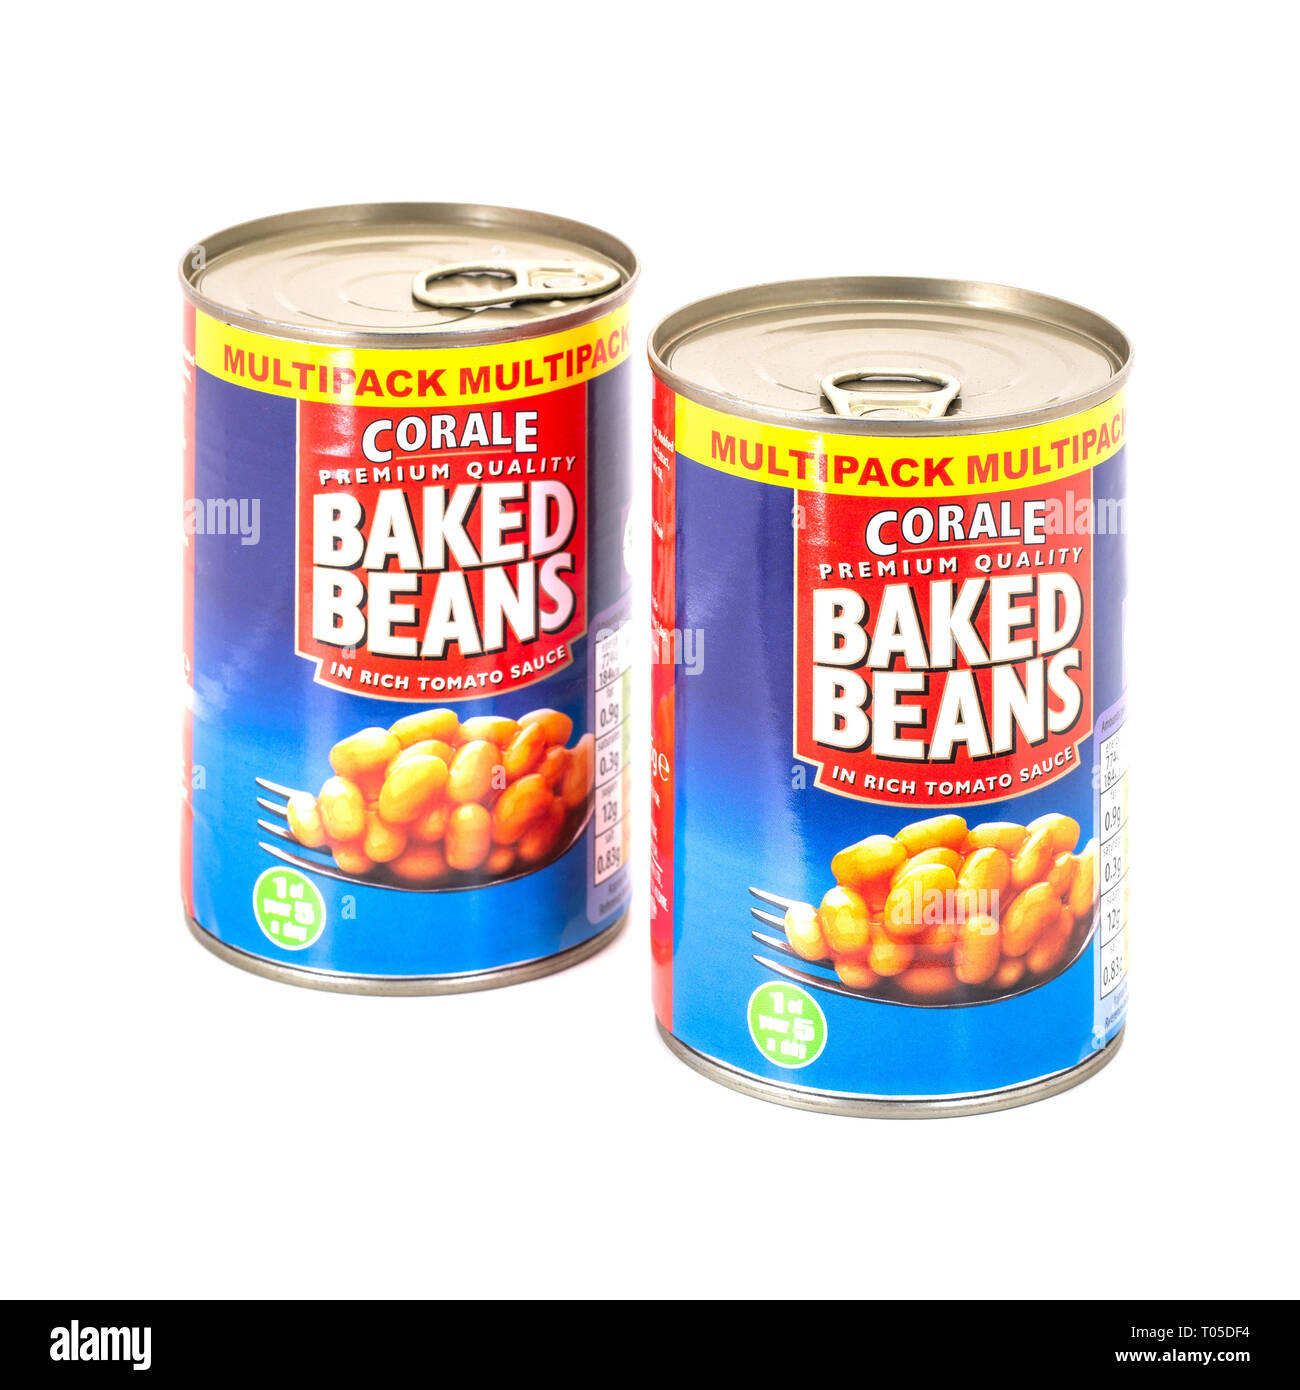 SWINDON, UK - MARCH 17, 2019: Two Cans of Corale Preamium Quality Baked Beans in rich tomato sauce on a white background - Stock Image